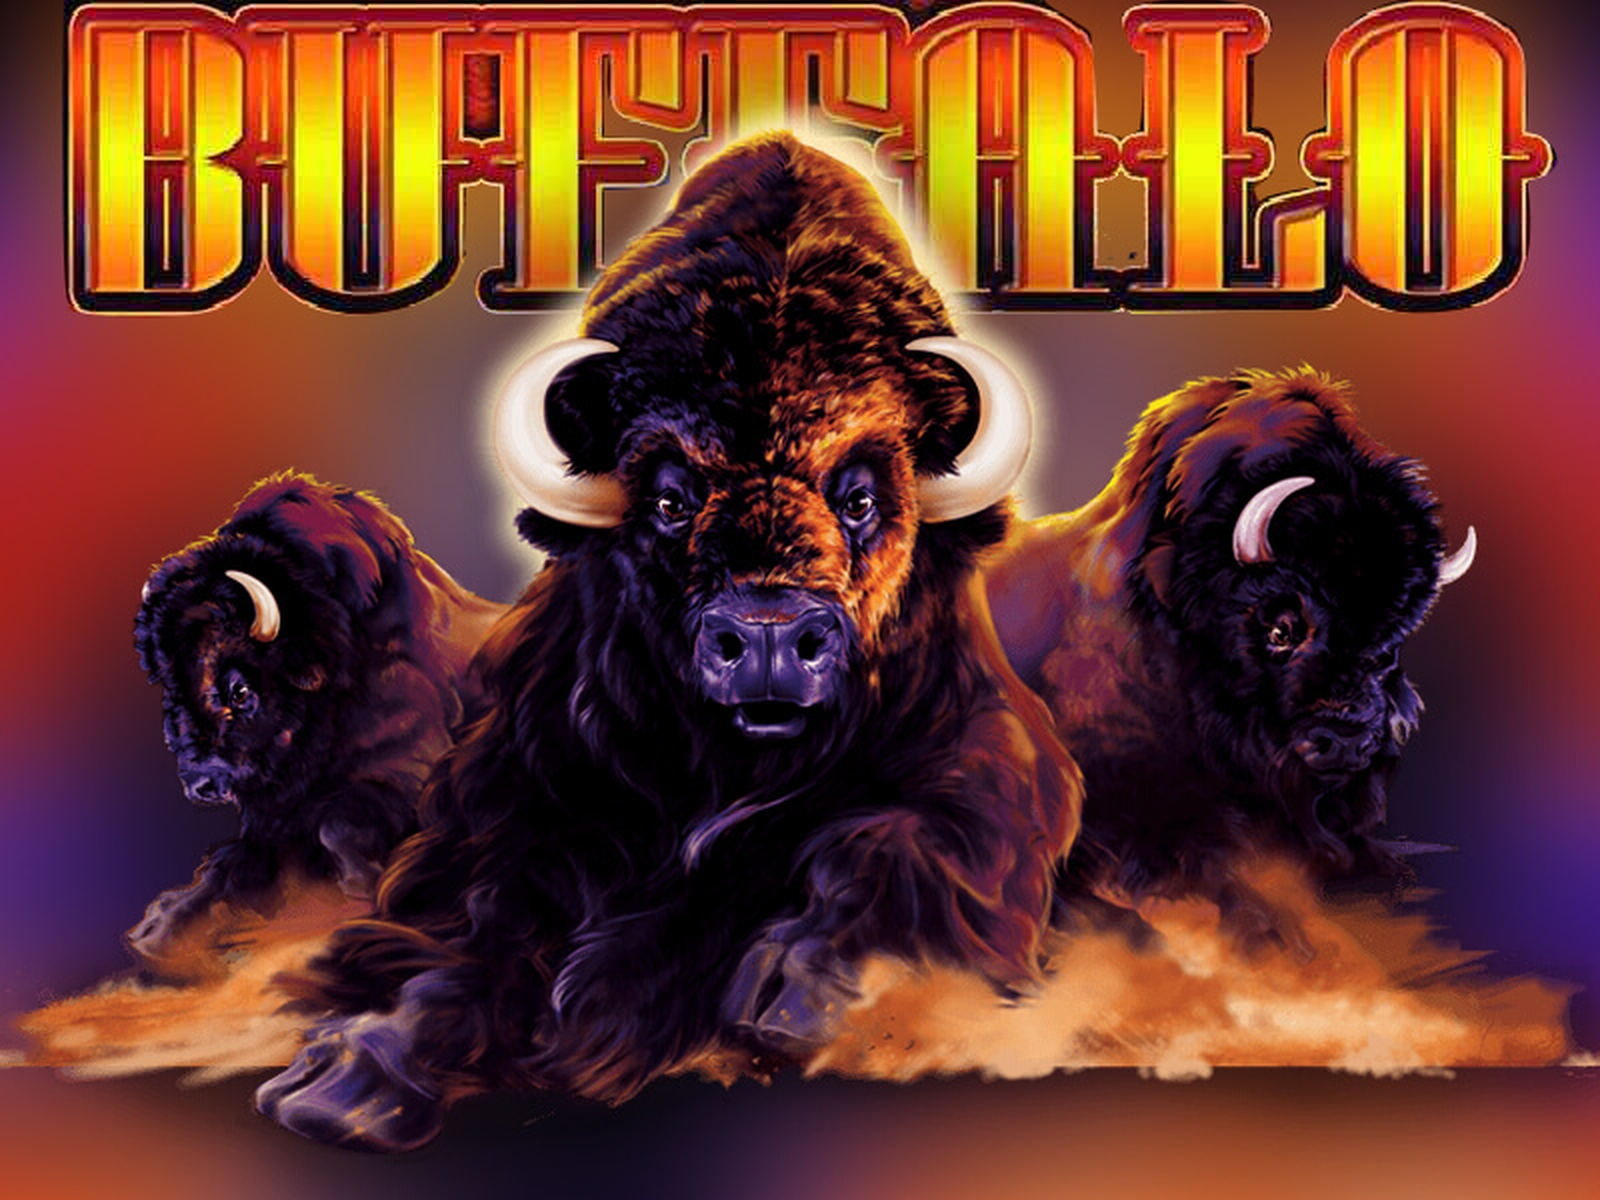 Se Buffalo (Aristocrat) Online Slot Demo Game, Aristocrat